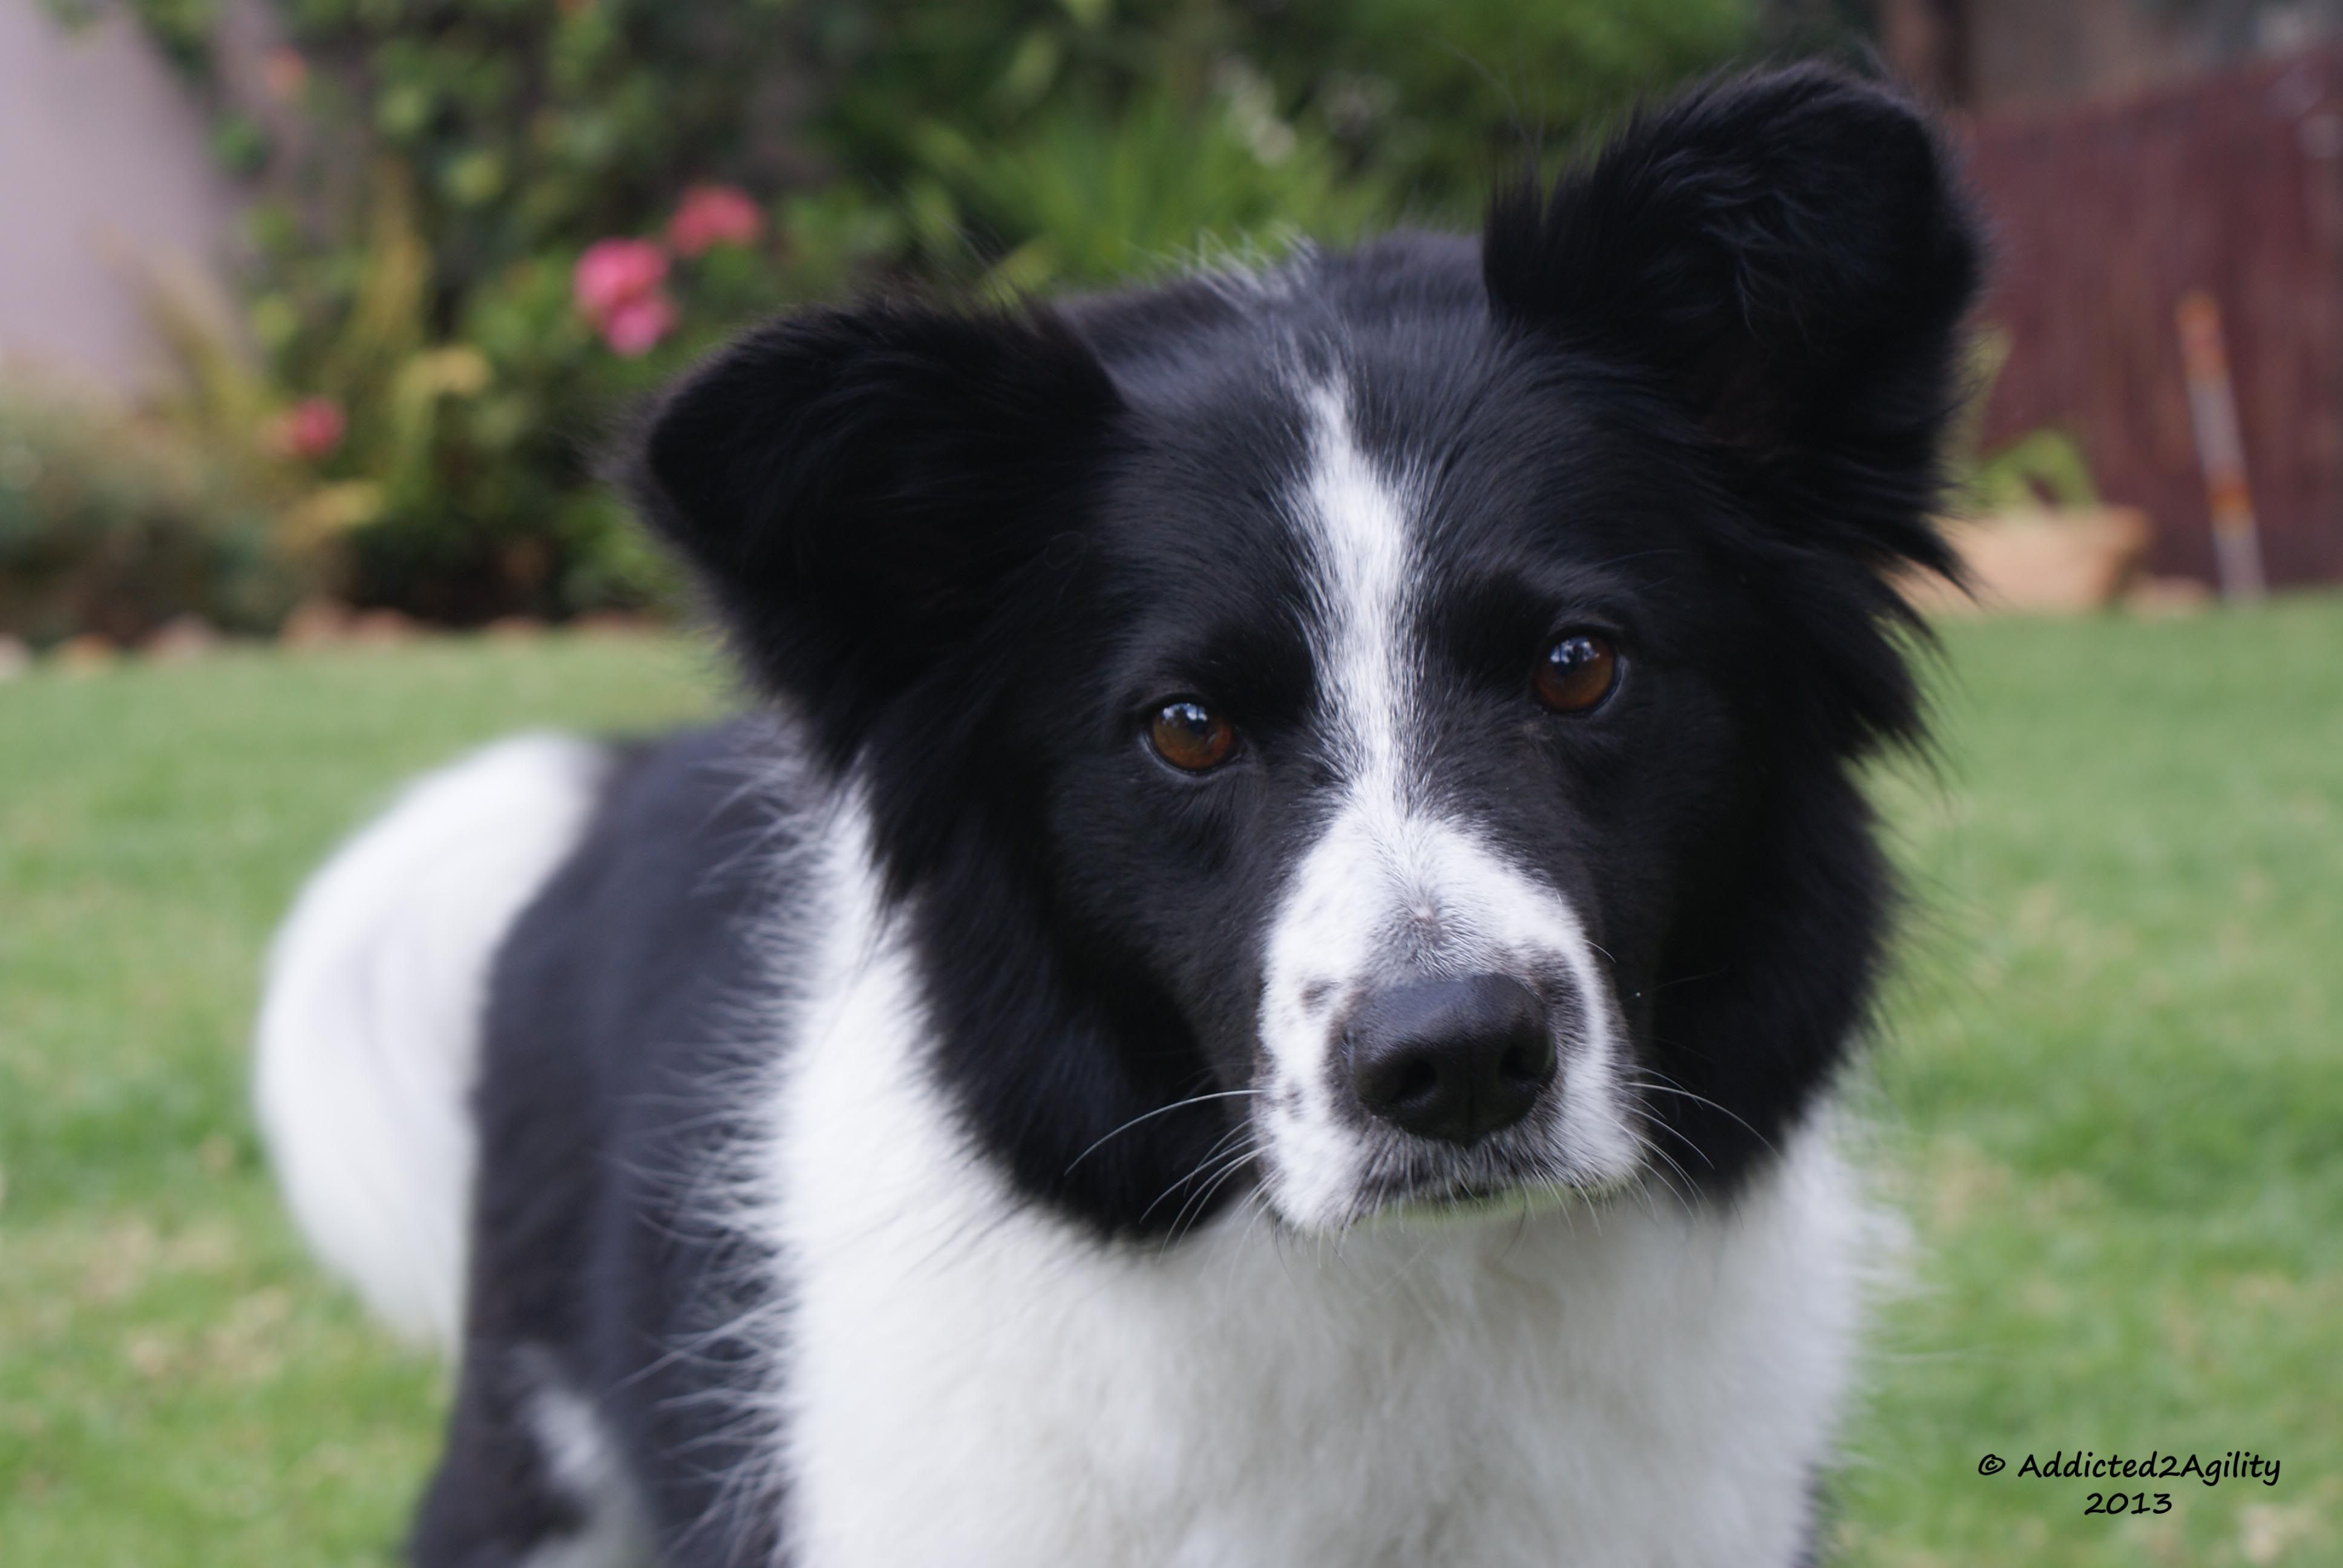 Chase Manhattan Aka Chase A 6 Year Old Rescue Border Collie